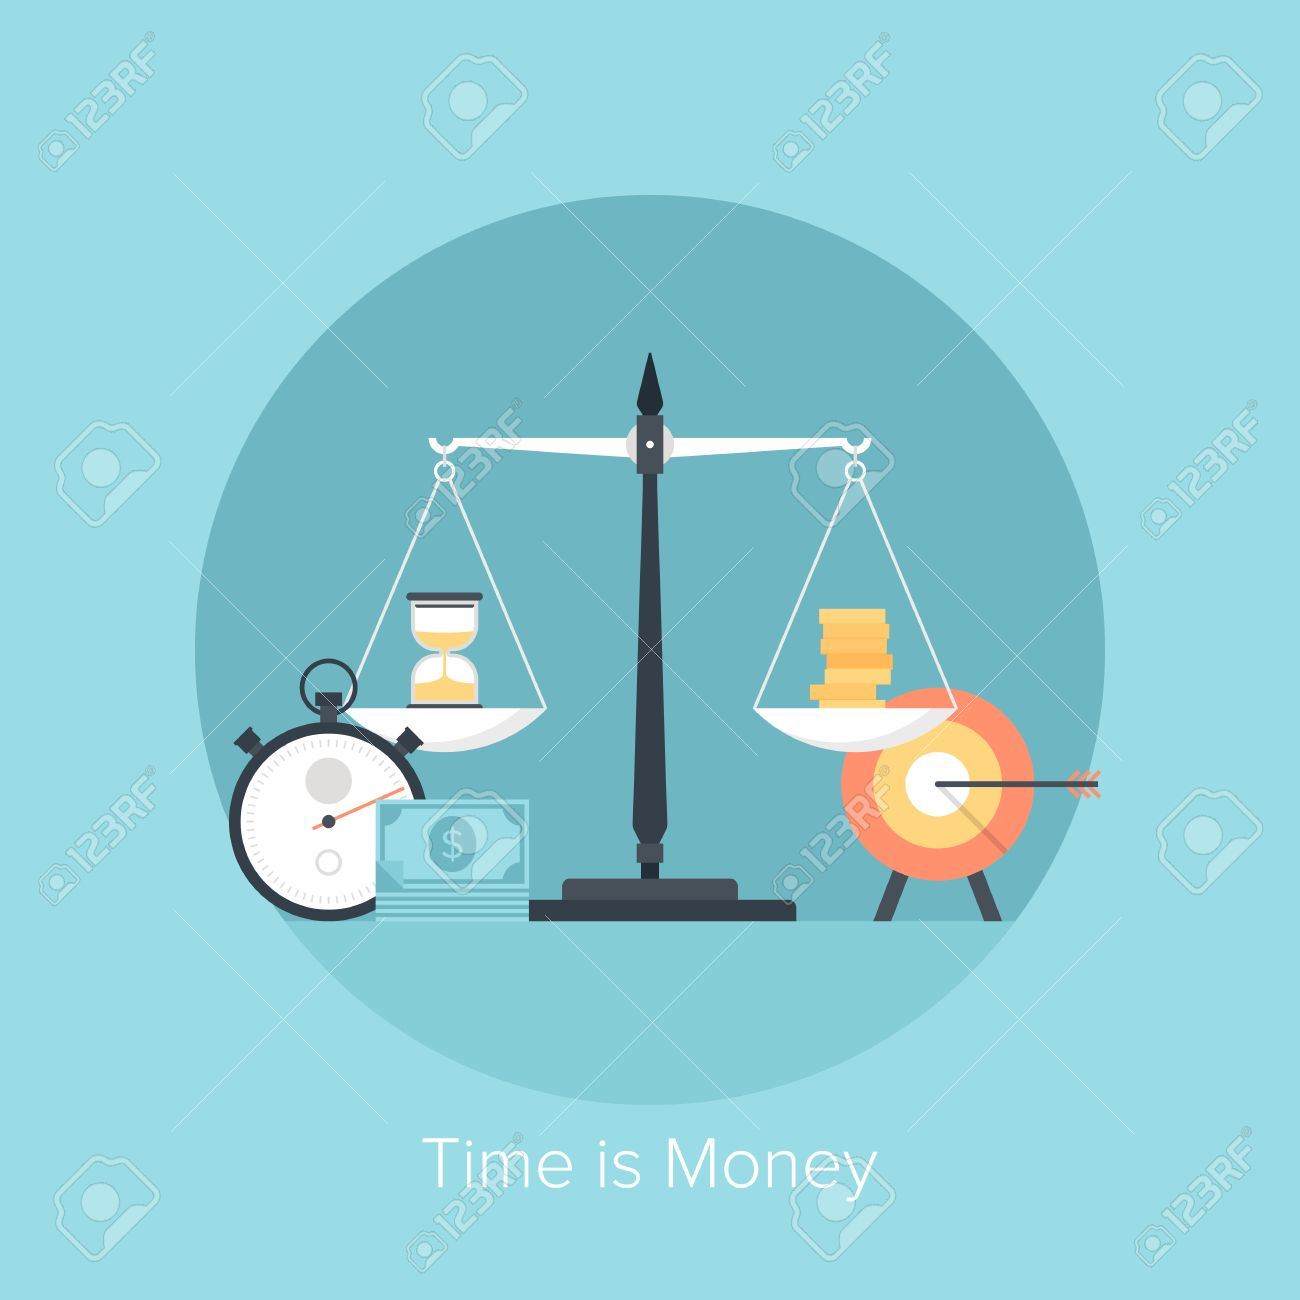 Vector illustration of time is money flat design concept isolated on blue background. - 27906281